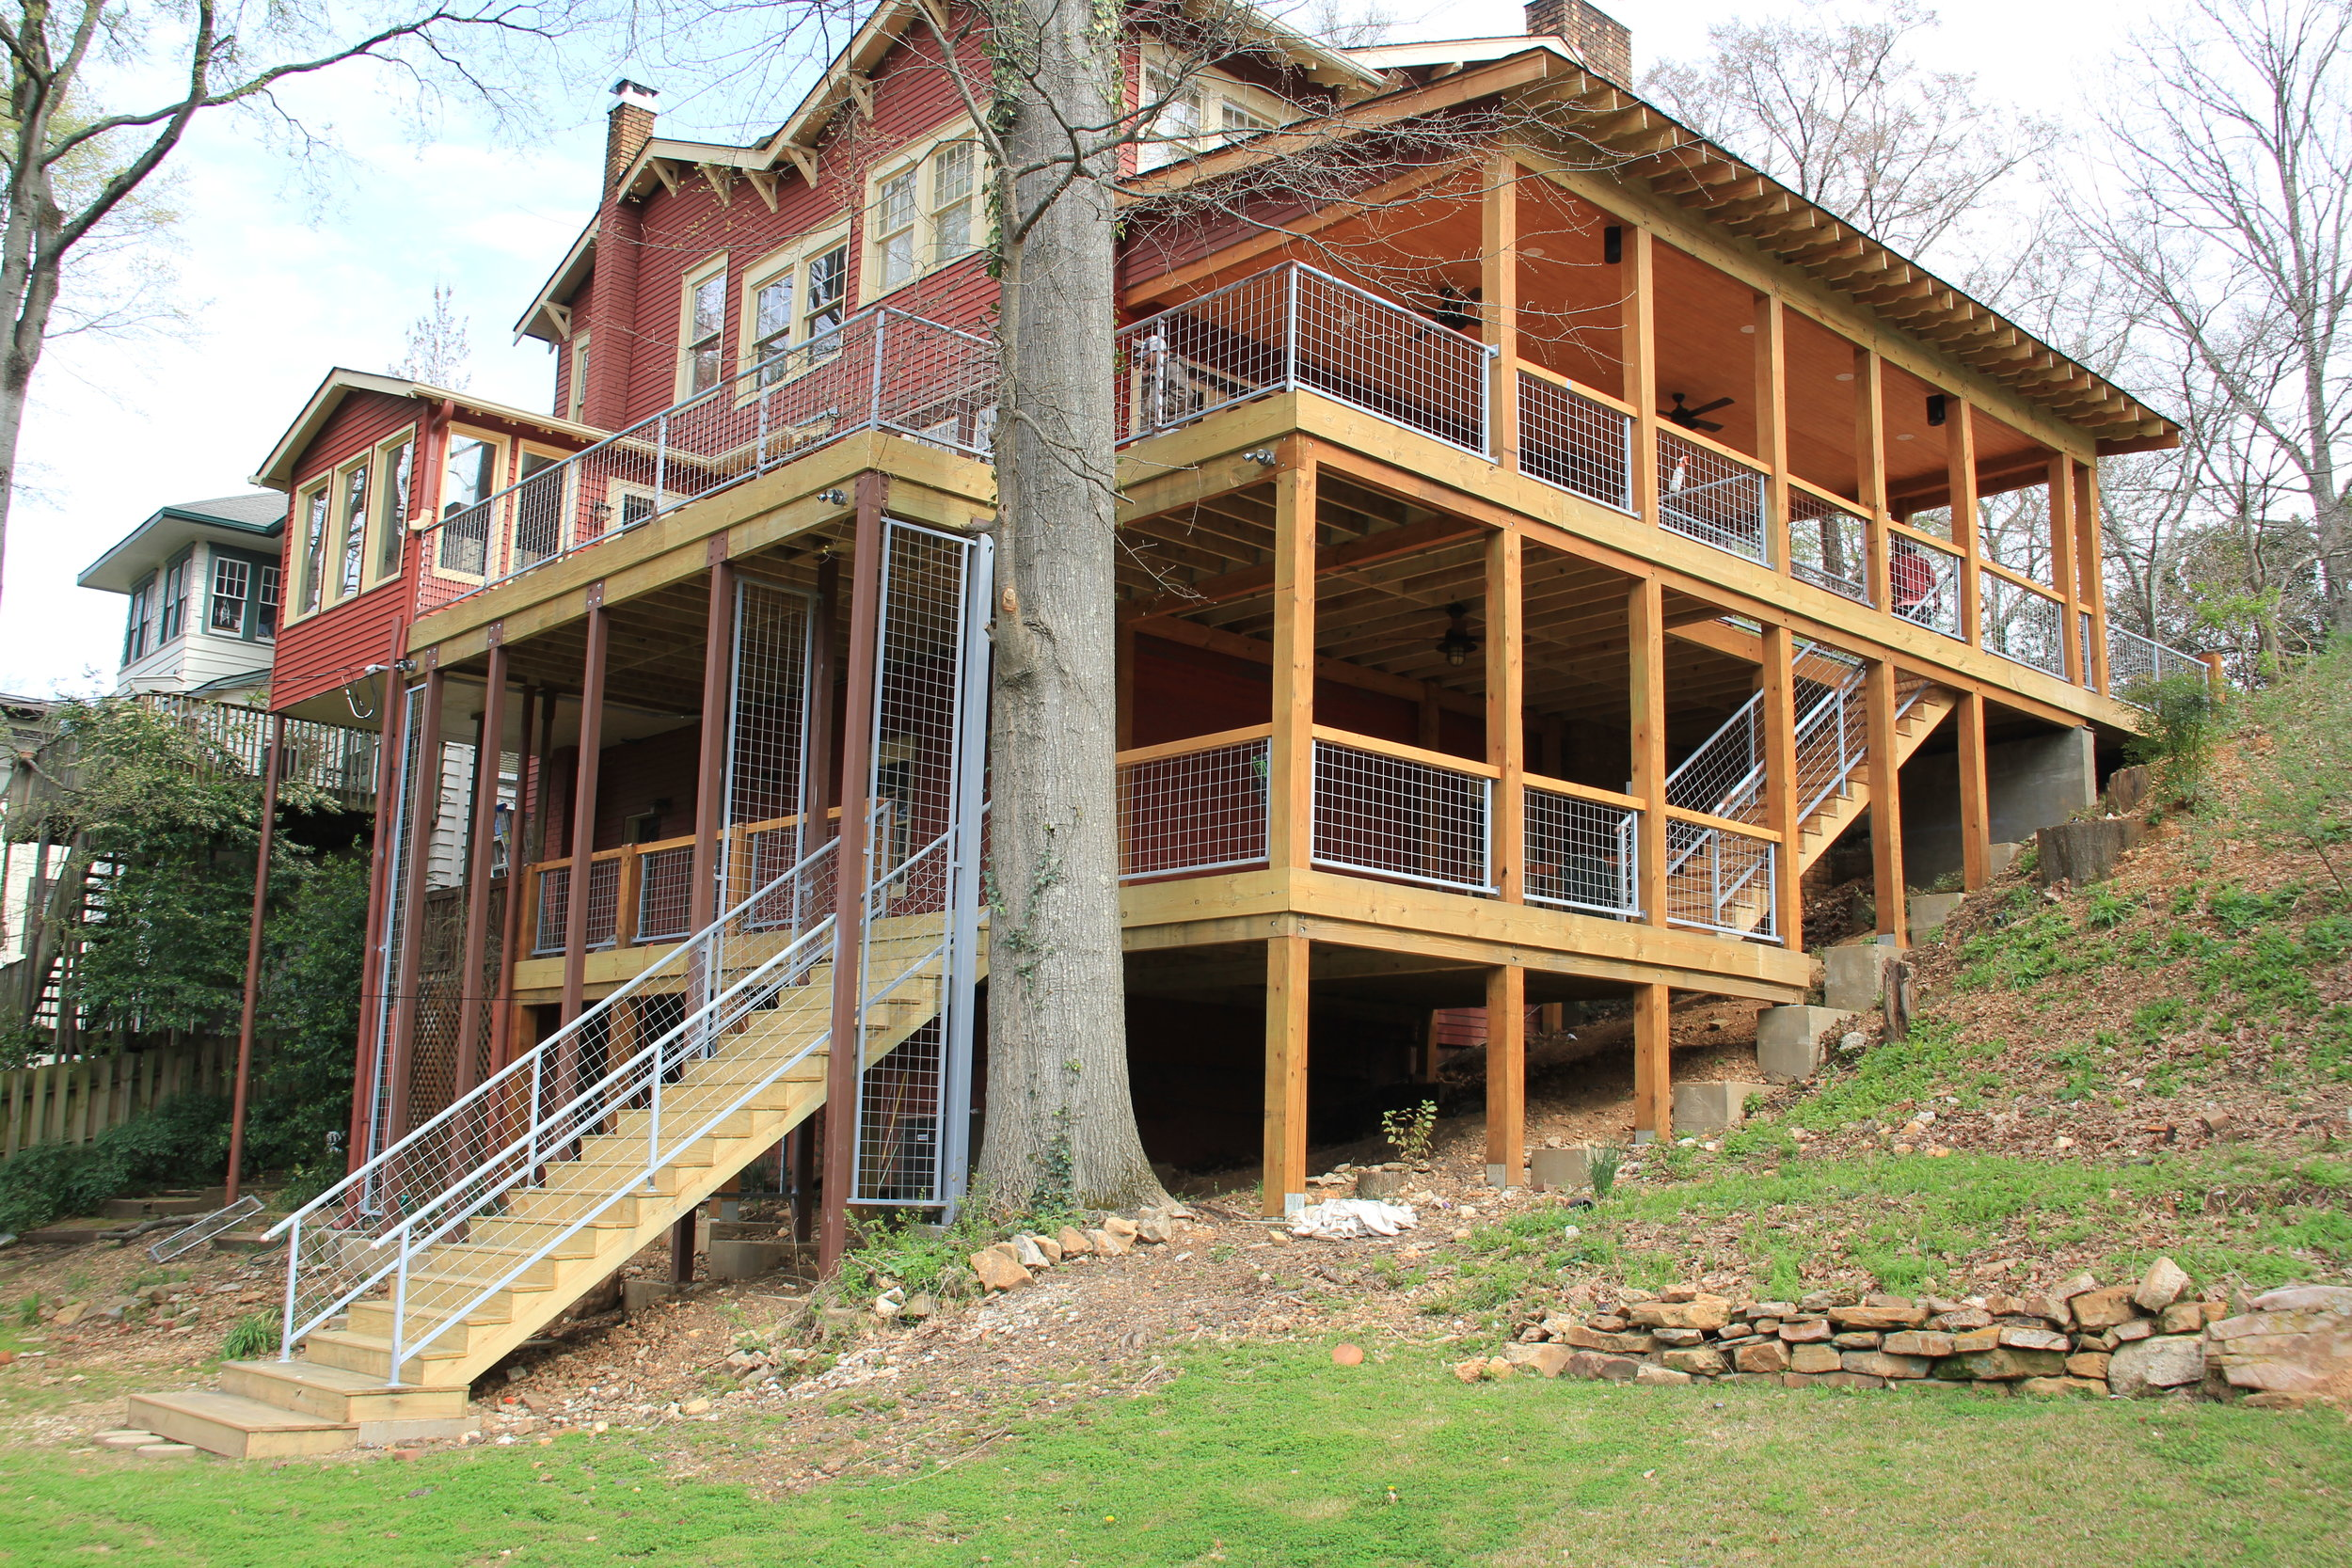 Handrails and Steel beams